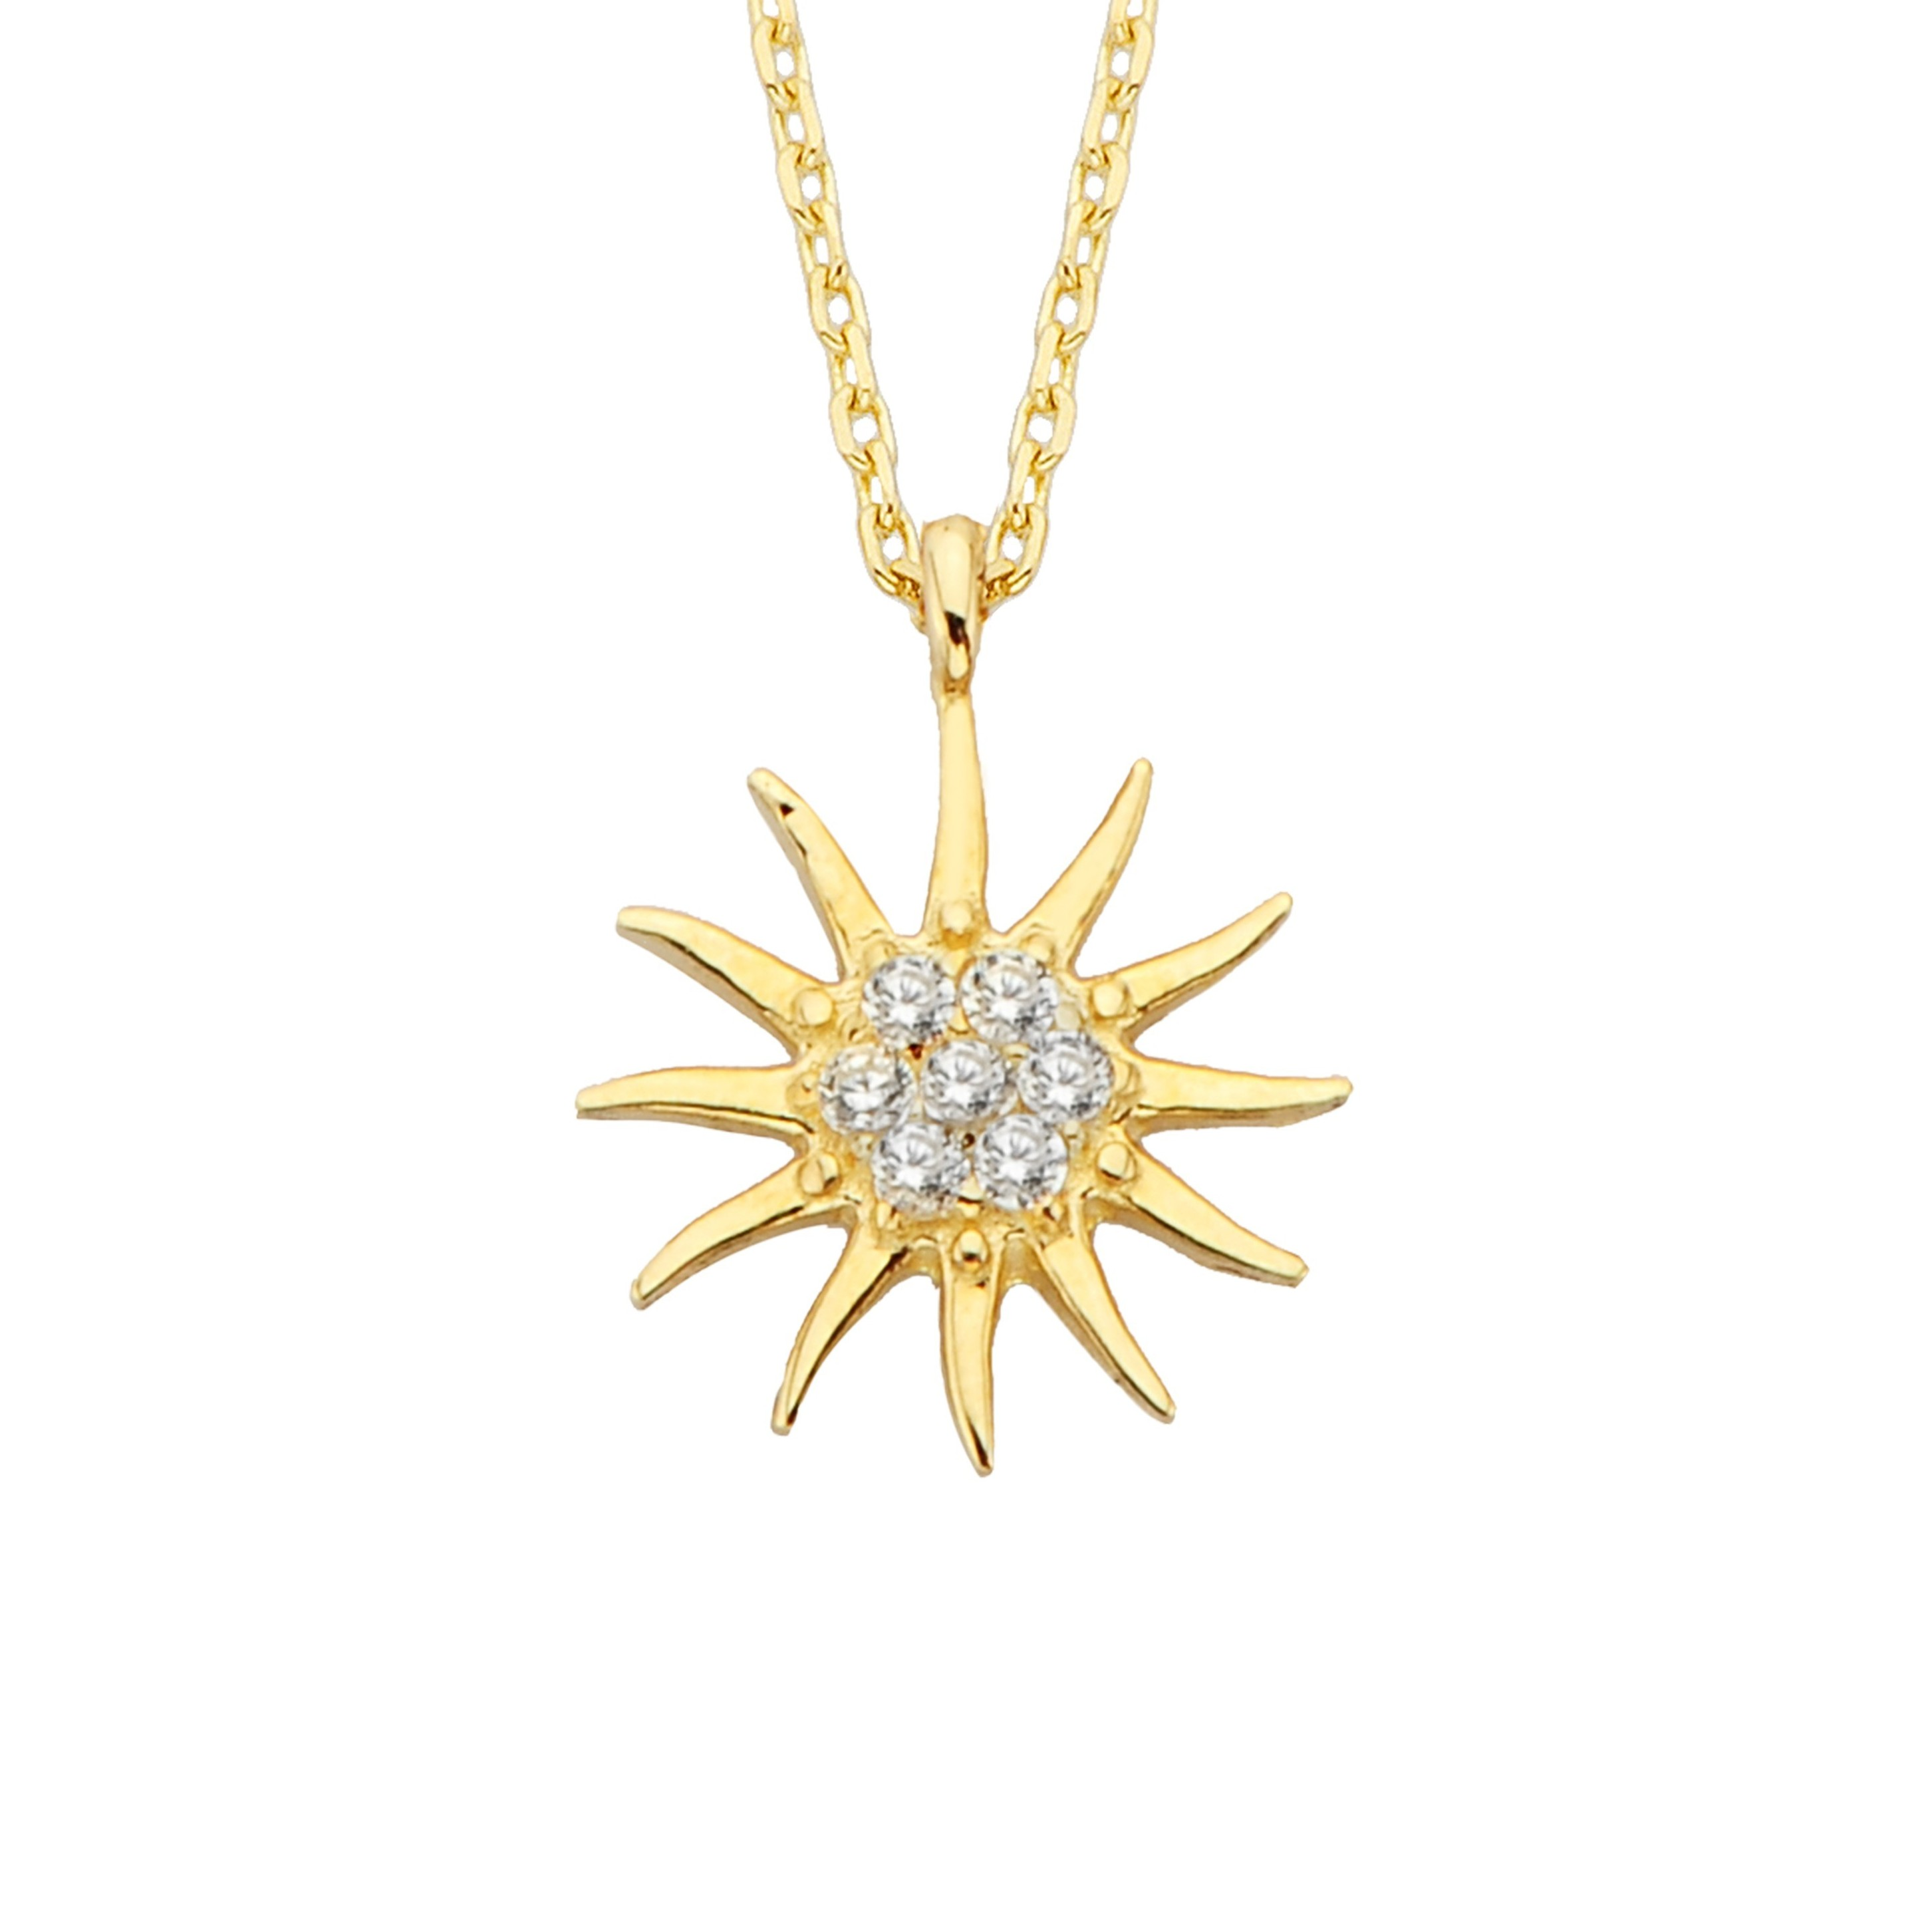 14K Solid Gold Sun Pendant Necklace for Women | CZ Tiny Dainty Charm Trendy jewelry | The best way to say You are my sun shine for her girlfriend mom Birtdhay